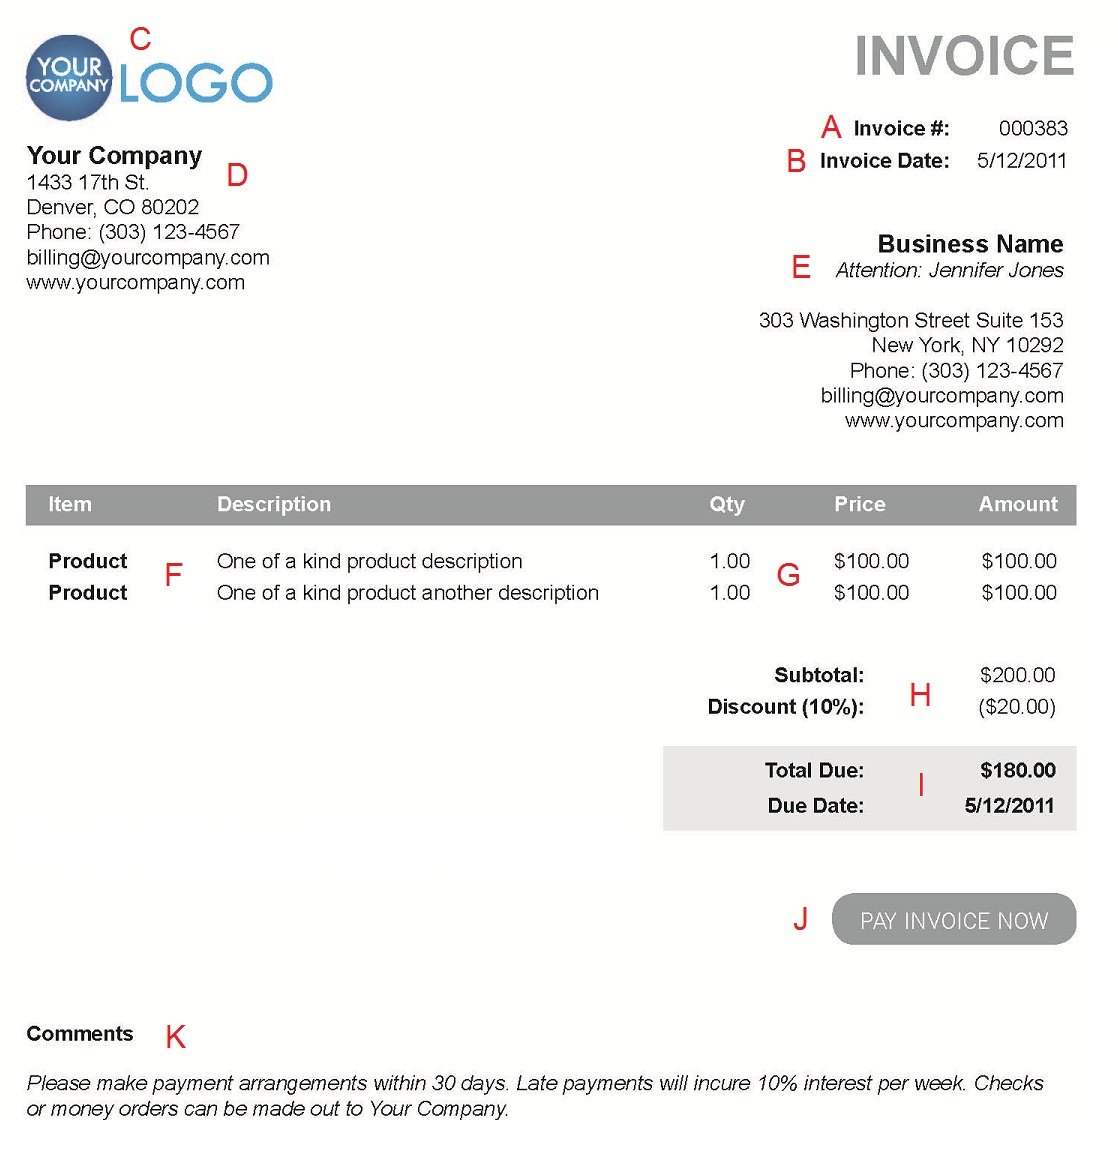 Ultrablogus  Gorgeous The  Different Sections Of An Electronic Payment Invoice With Interesting A  With Appealing Invoic Also Past Due Invoice Letter In Addition Quickbooks Invoices And How To Fill Out An Invoice As Well As Invoice Payment Additionally Aynax Invoices From Paysimplecom With Ultrablogus  Interesting The  Different Sections Of An Electronic Payment Invoice With Appealing A  And Gorgeous Invoic Also Past Due Invoice Letter In Addition Quickbooks Invoices From Paysimplecom